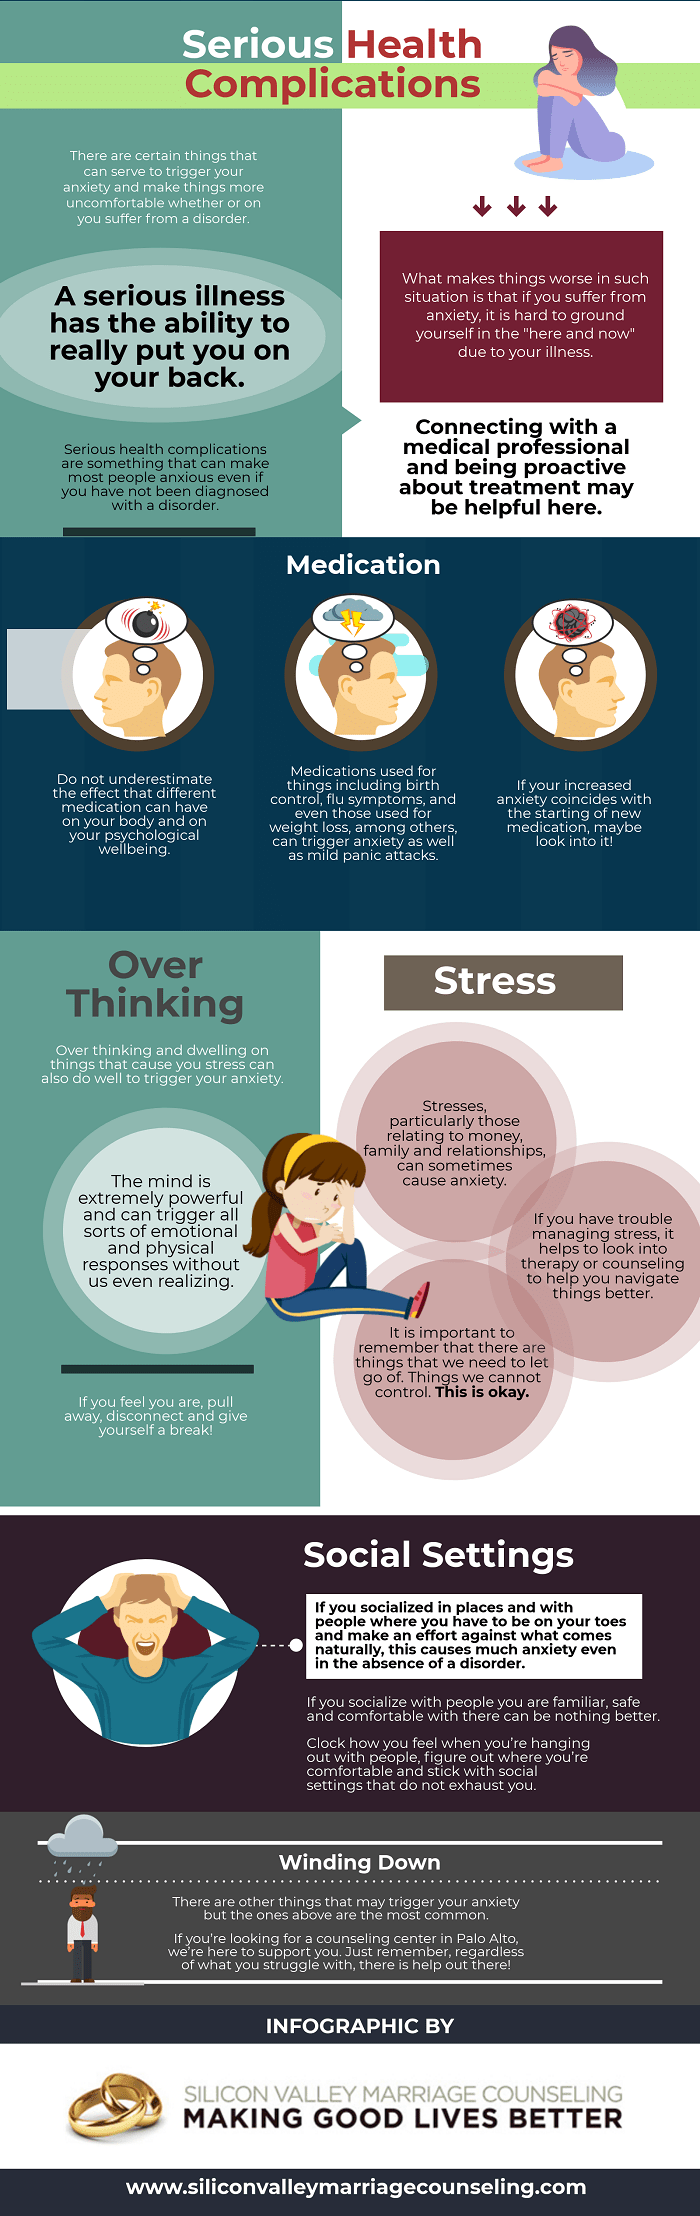 Anxiety Triggers What Is Making Me More Anxious? - Silicon ...